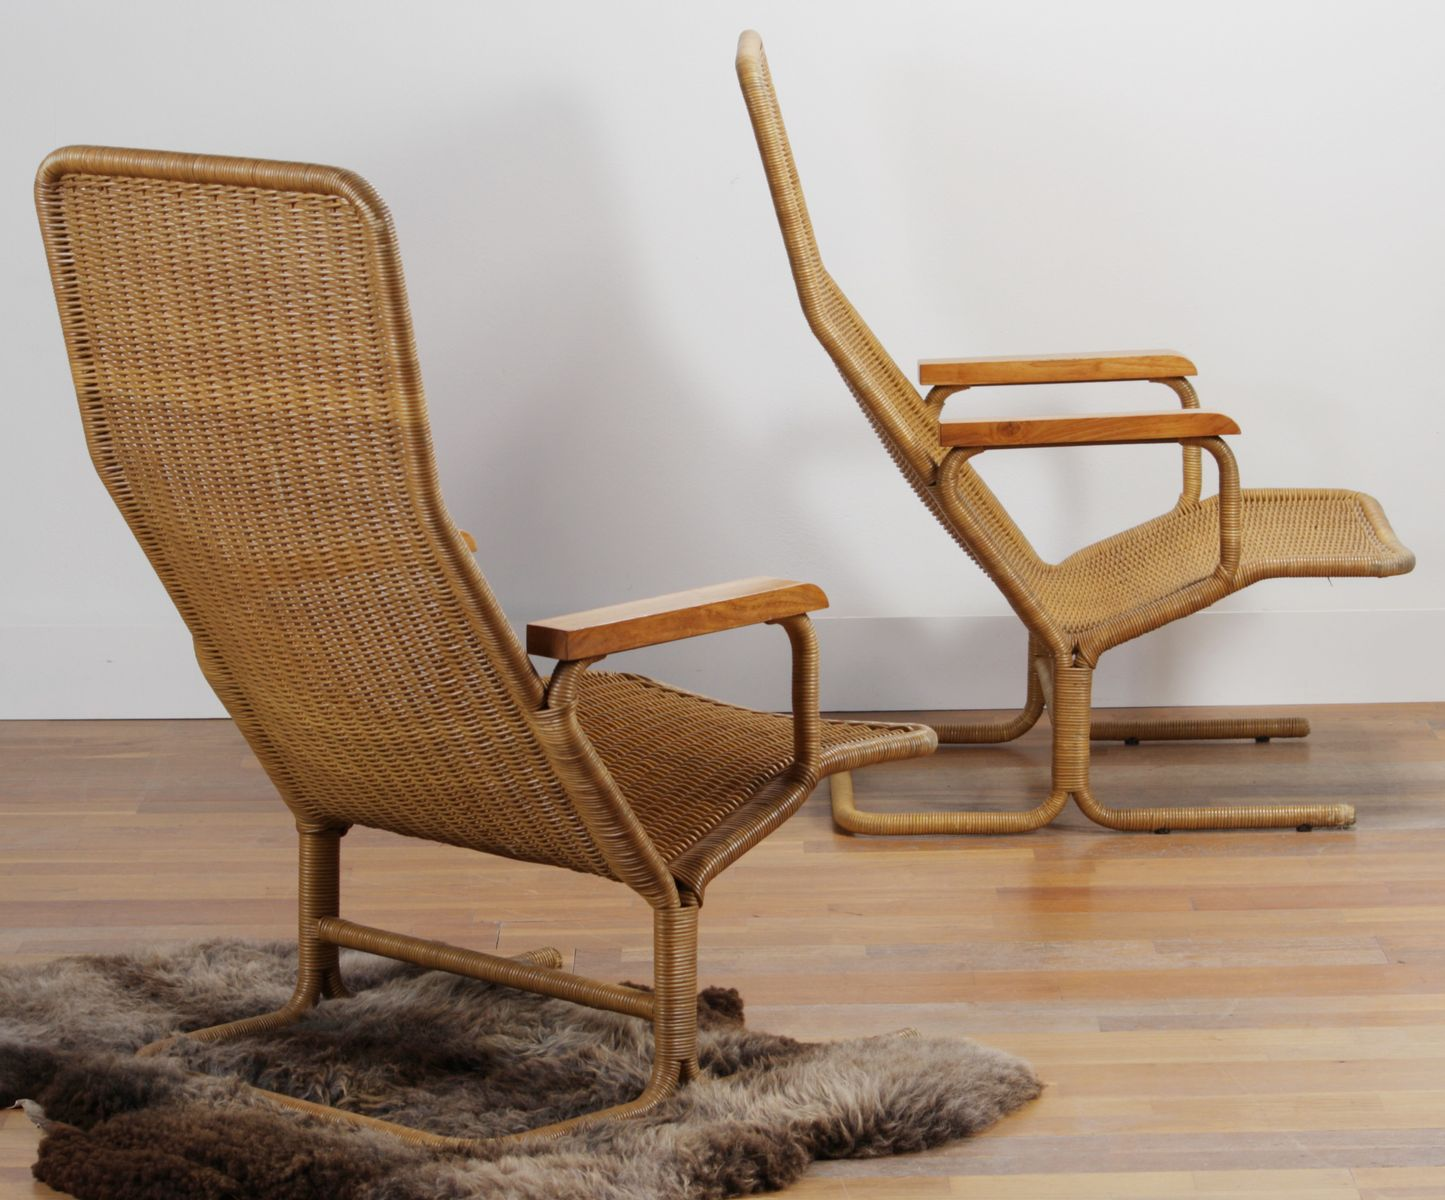 rattan lounge chair by dirk van sliedregt for gebr. Black Bedroom Furniture Sets. Home Design Ideas